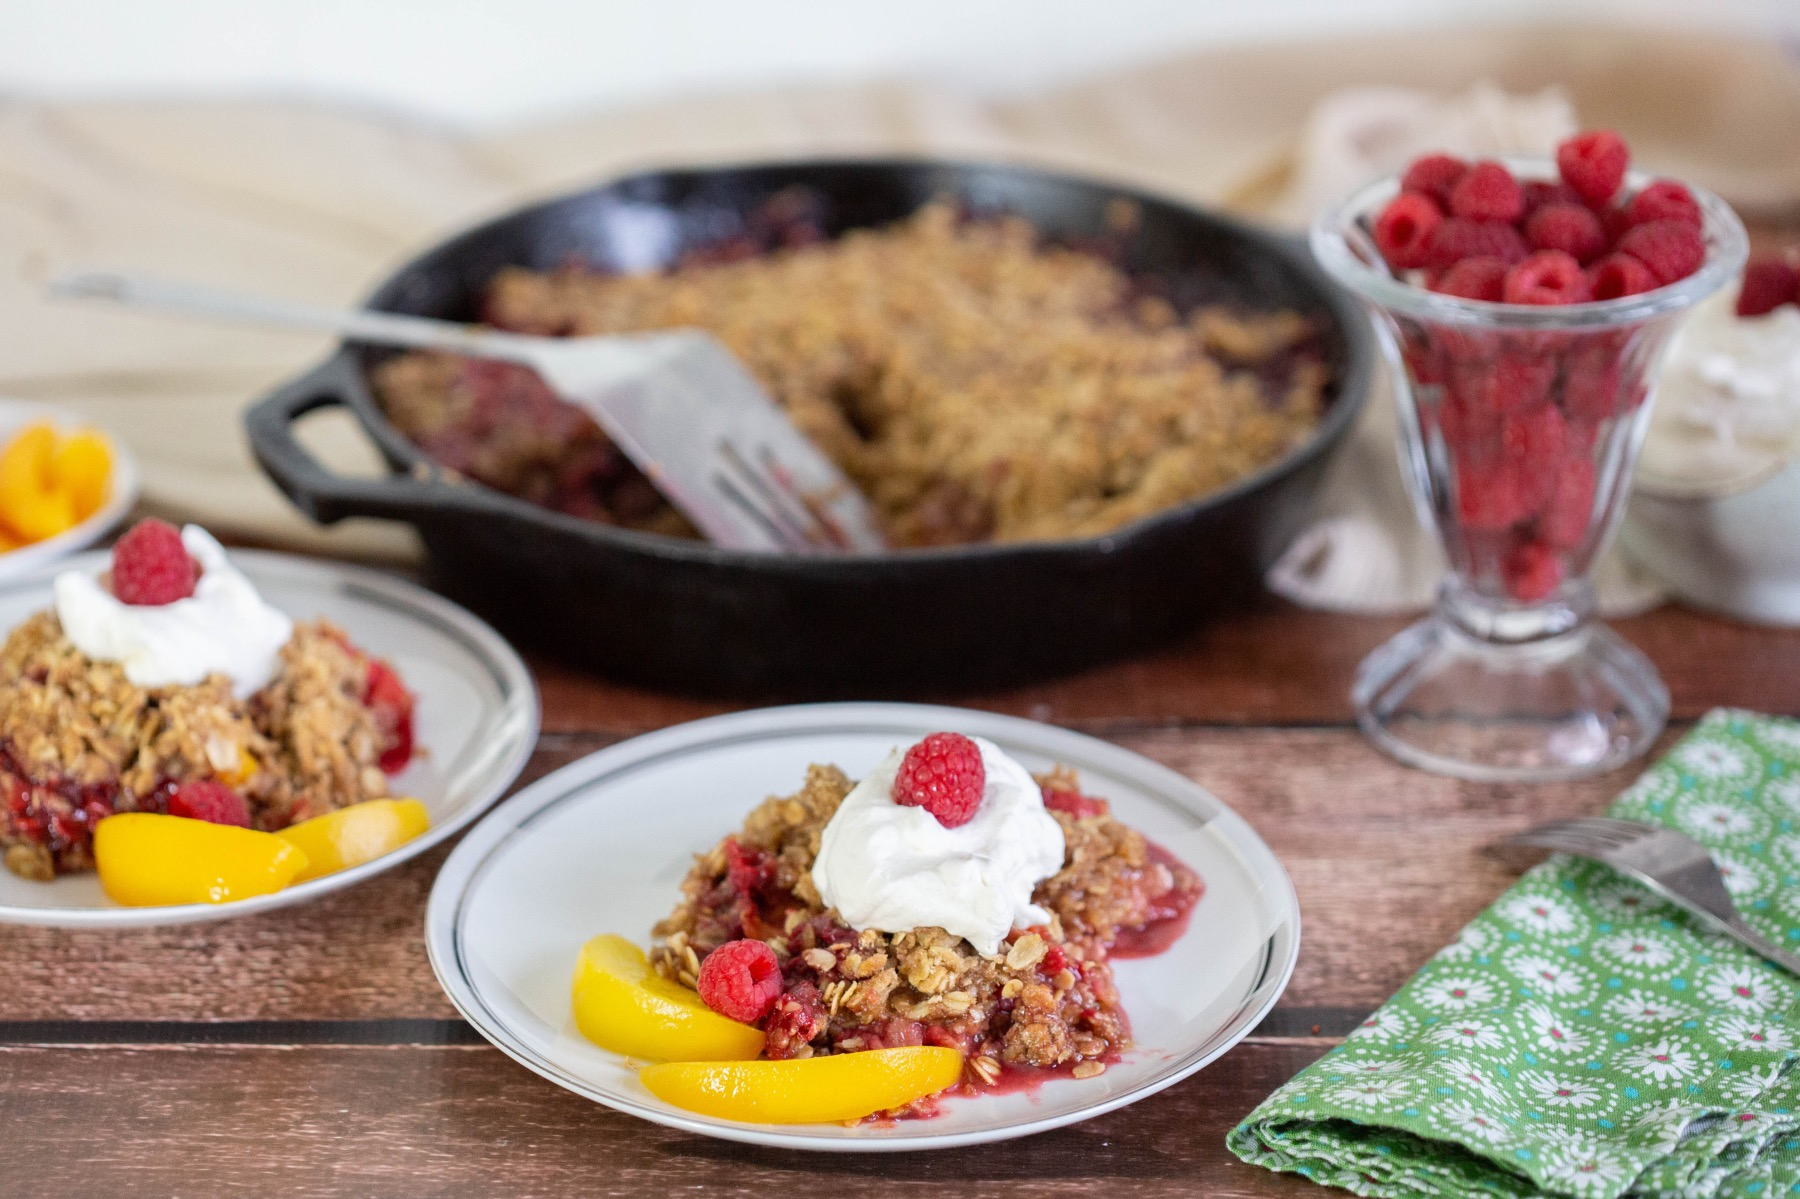 serve the peach crumble with whipped cream and raspberries